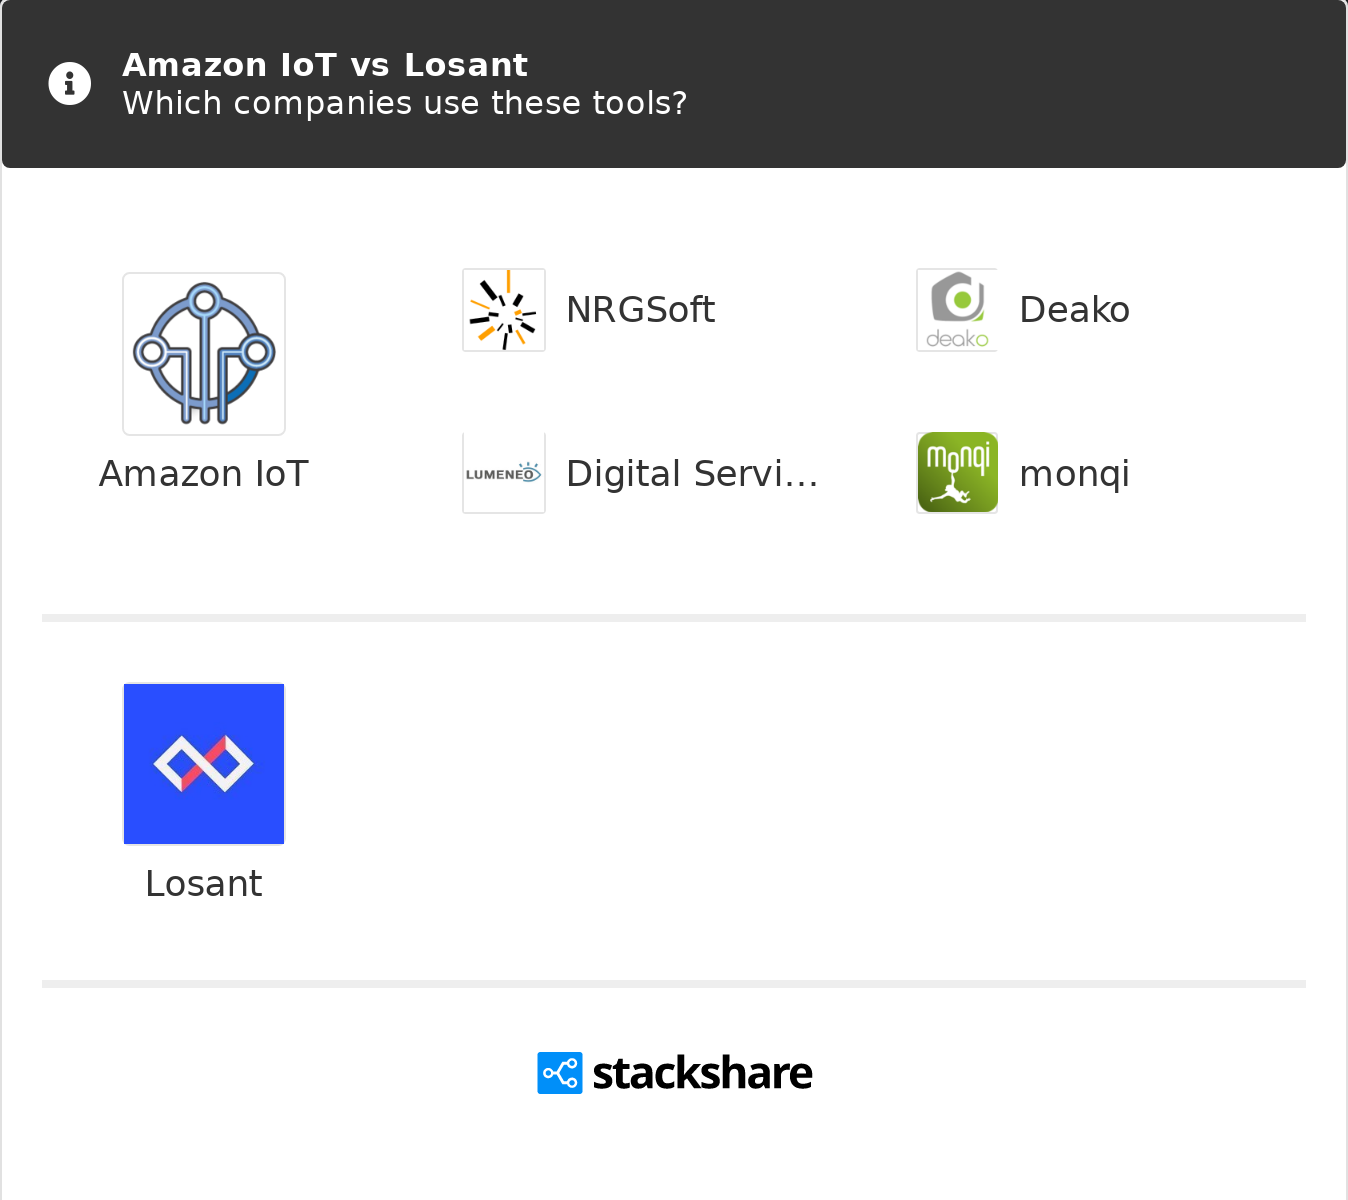 Amazon IoT vs Losant   What are the differences?